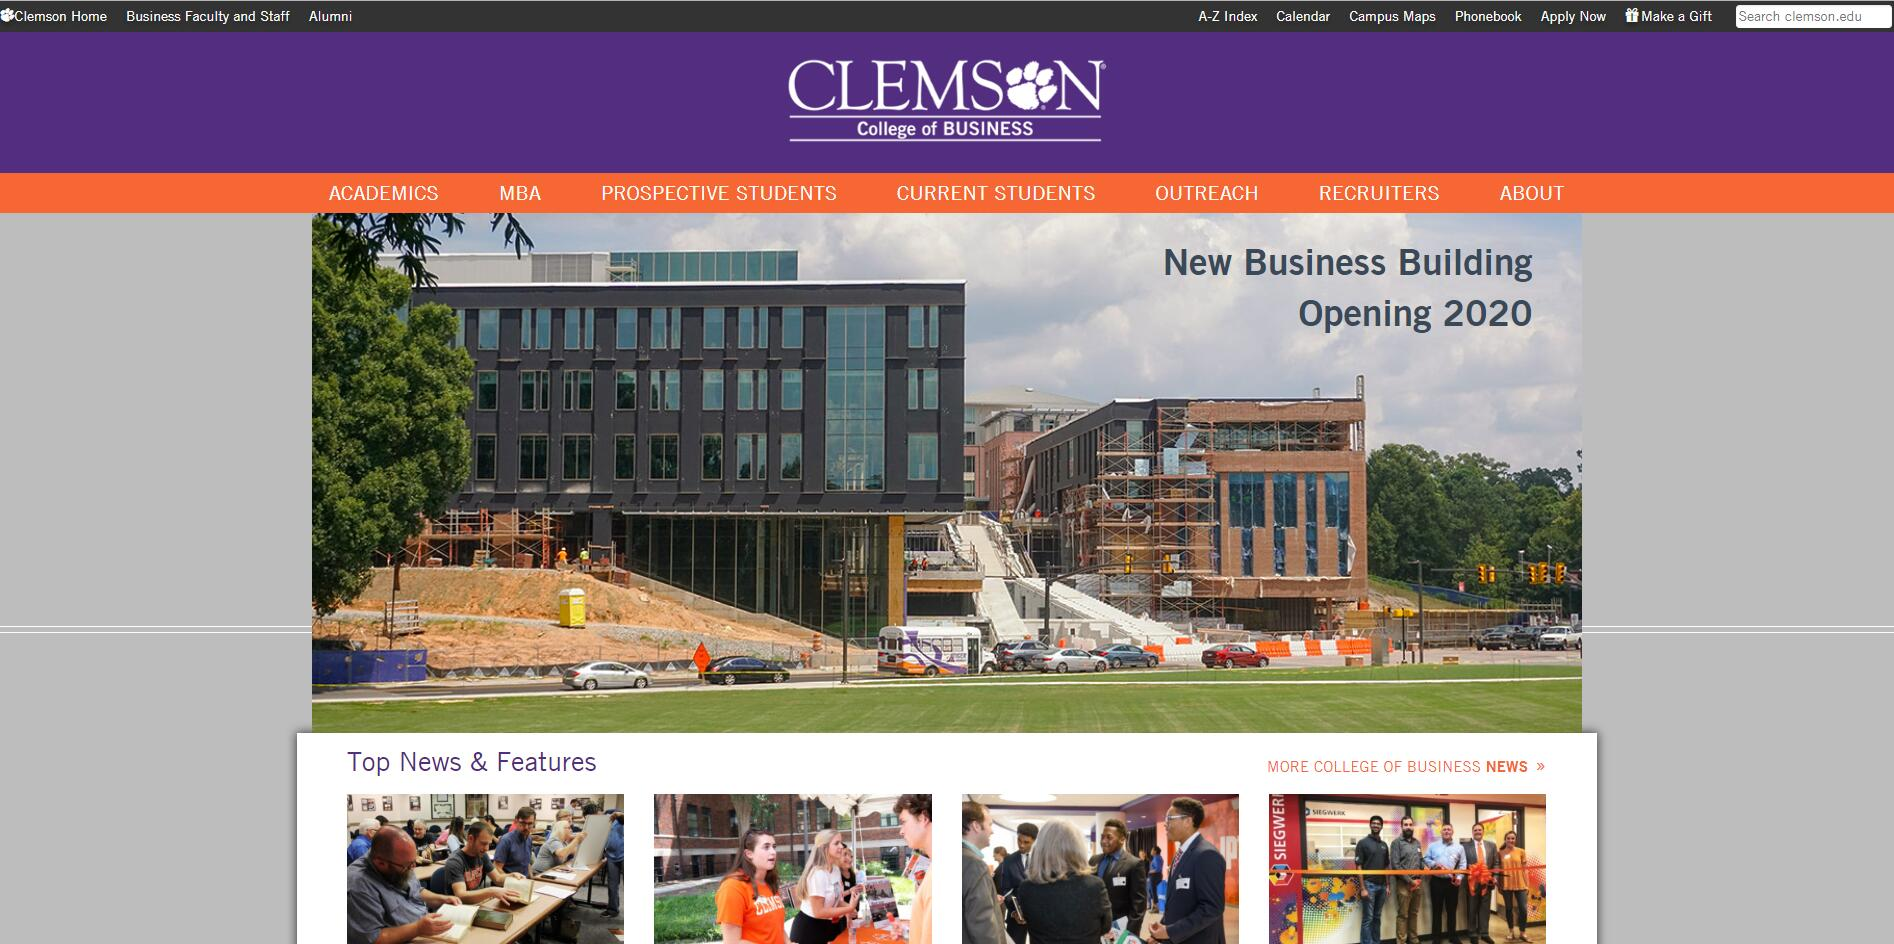 The College of Business and Behavioral Science at Clemson University